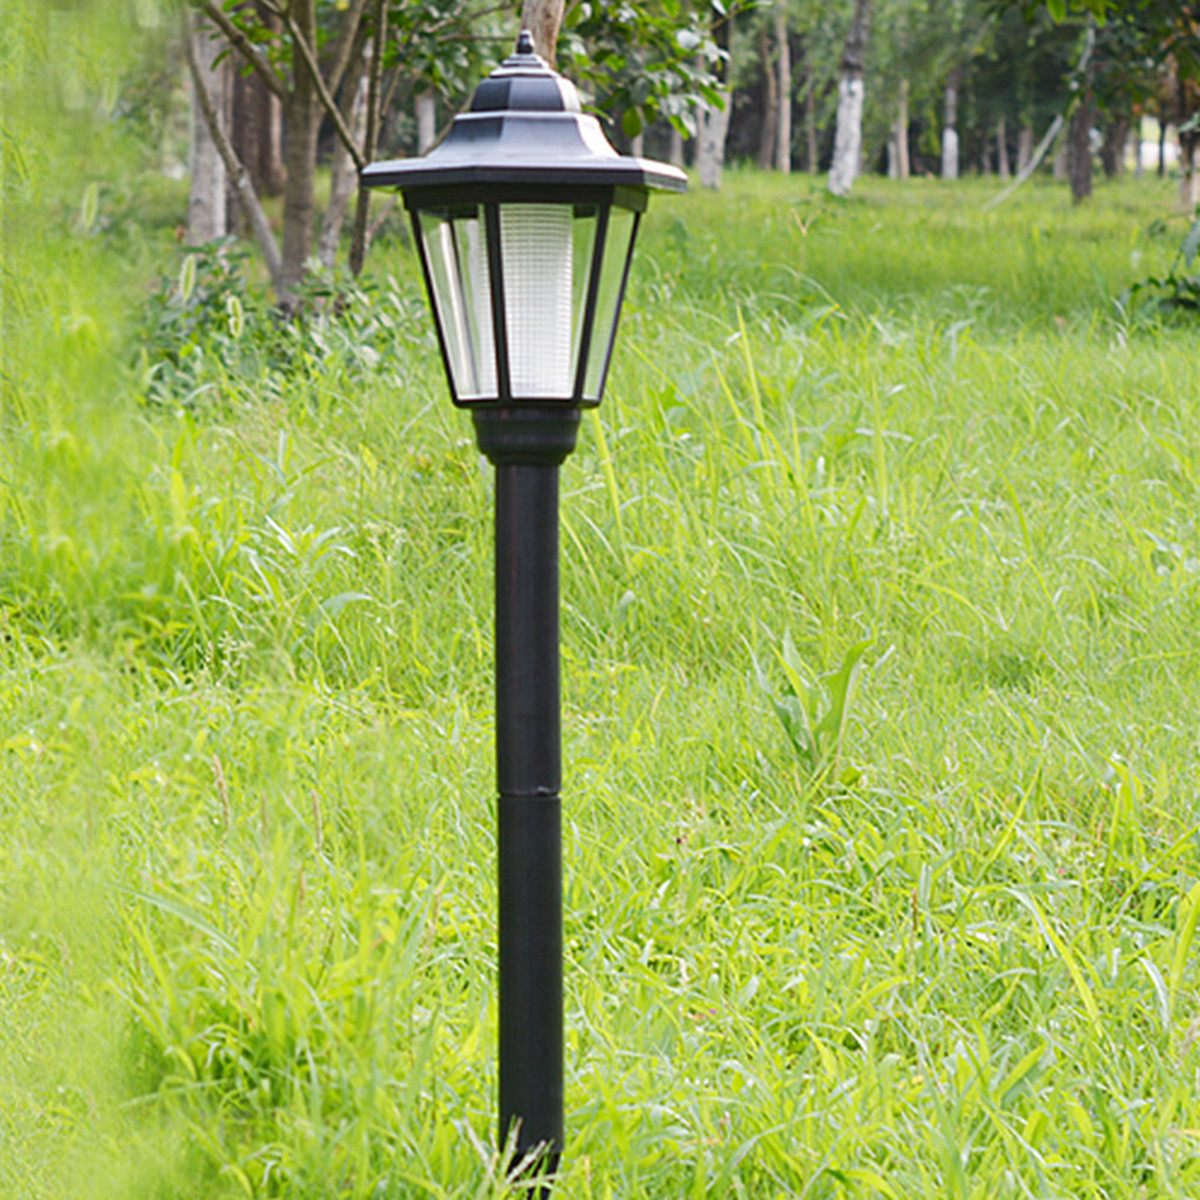 Under Ground LED Solar Lamp Light Lawn Lamp Post Outdoor Garden Lanterns Pillar Yard Garden Decoration Lighting White Light garden decoration solar light little angel reading a book atmosphere lamp outdoor solar power led yard lawn decoration lamp